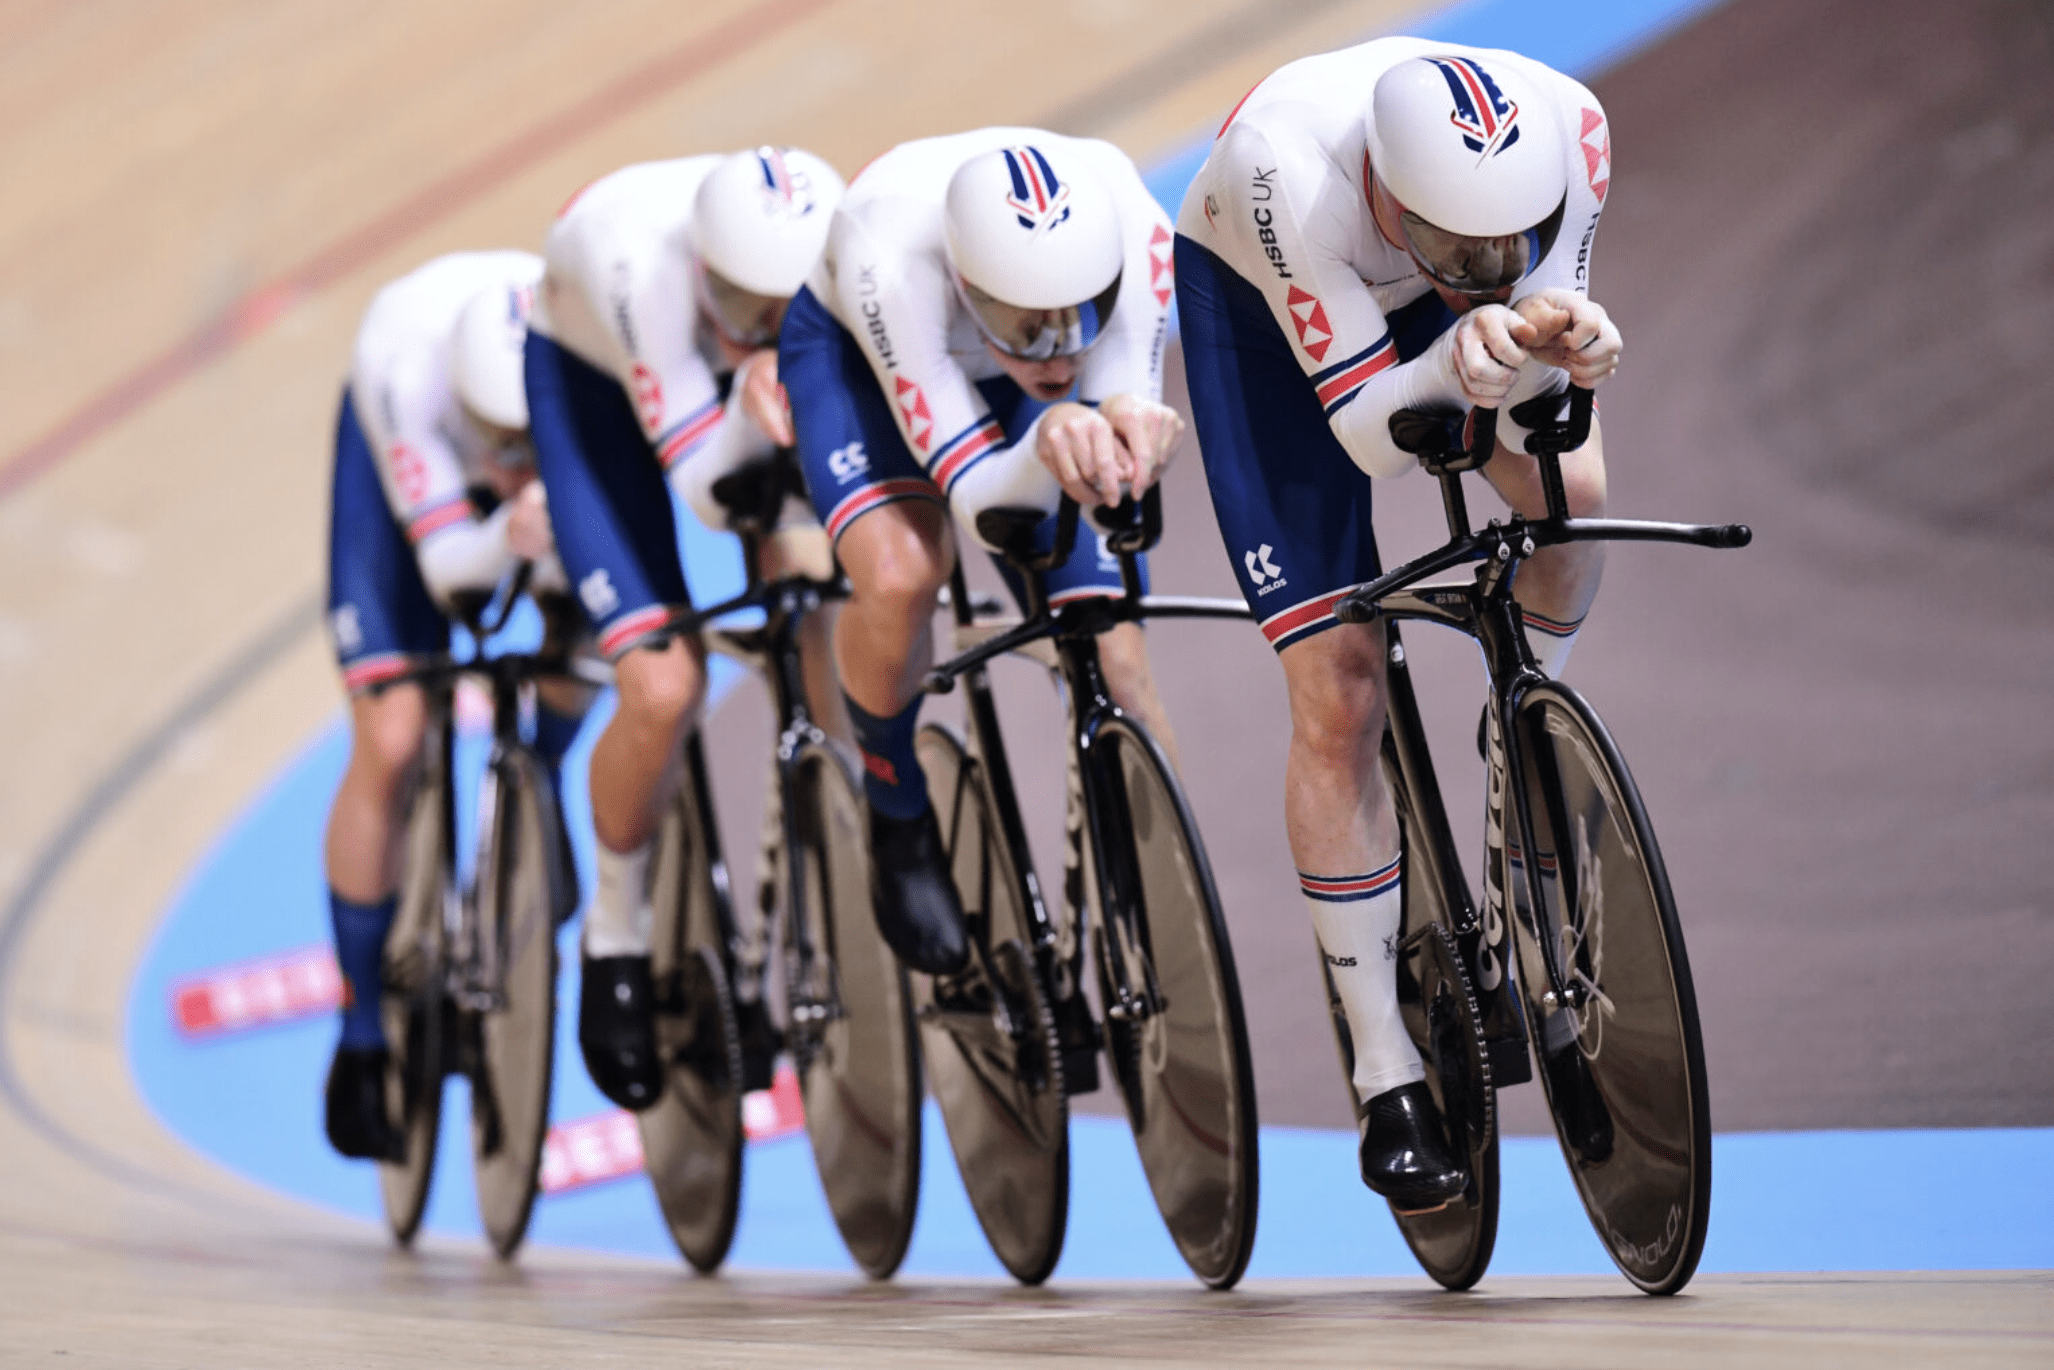 20% discount for British Cycling staff 1